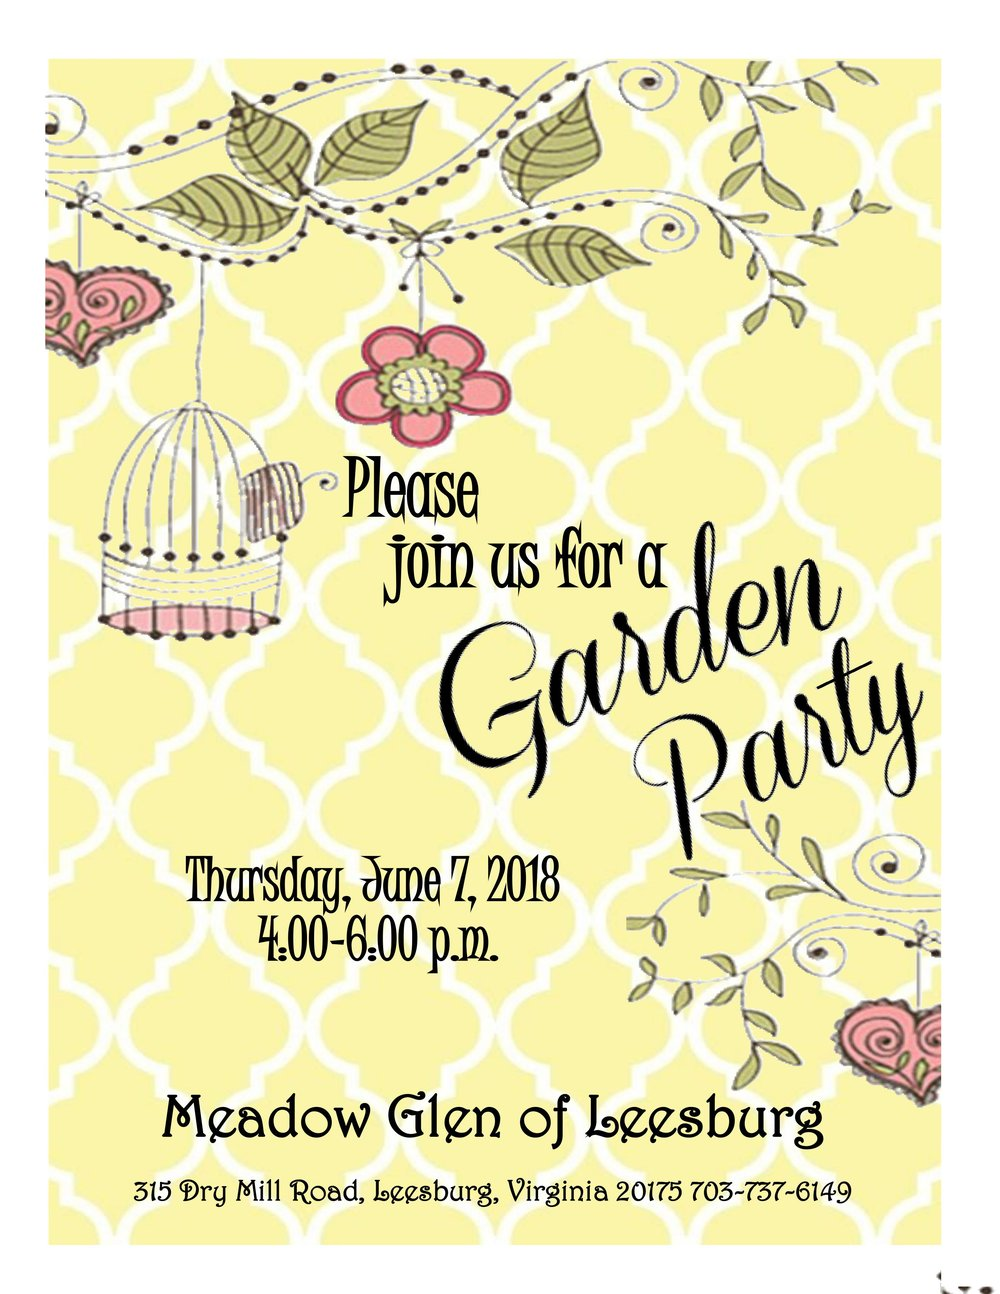 Meadow Glen Garden Party